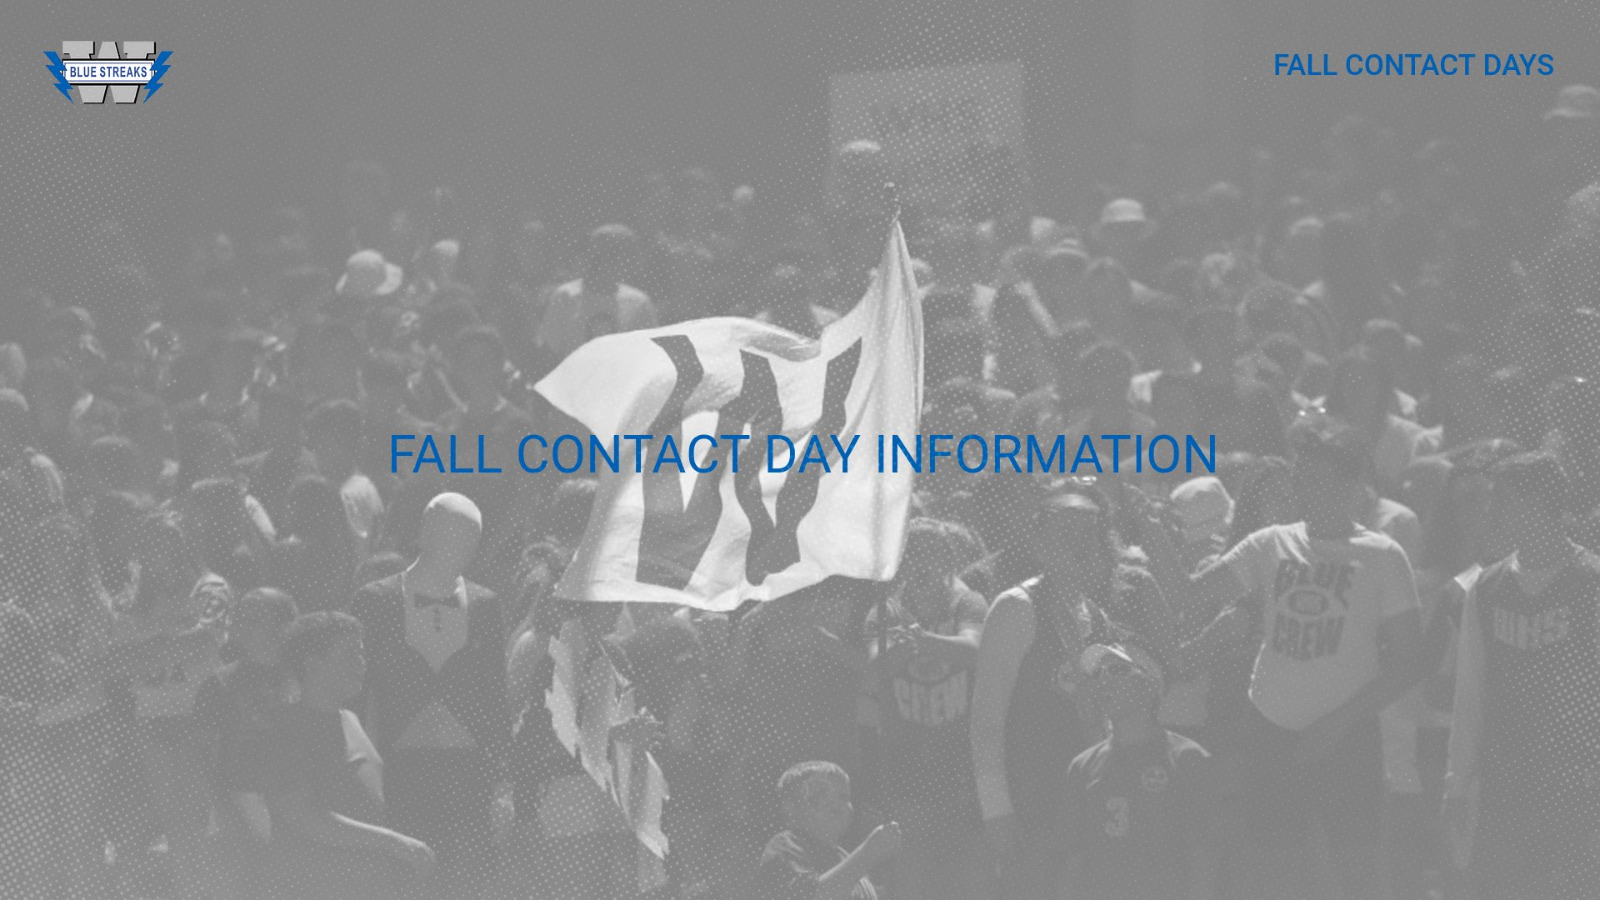 Fall Contact Day Information